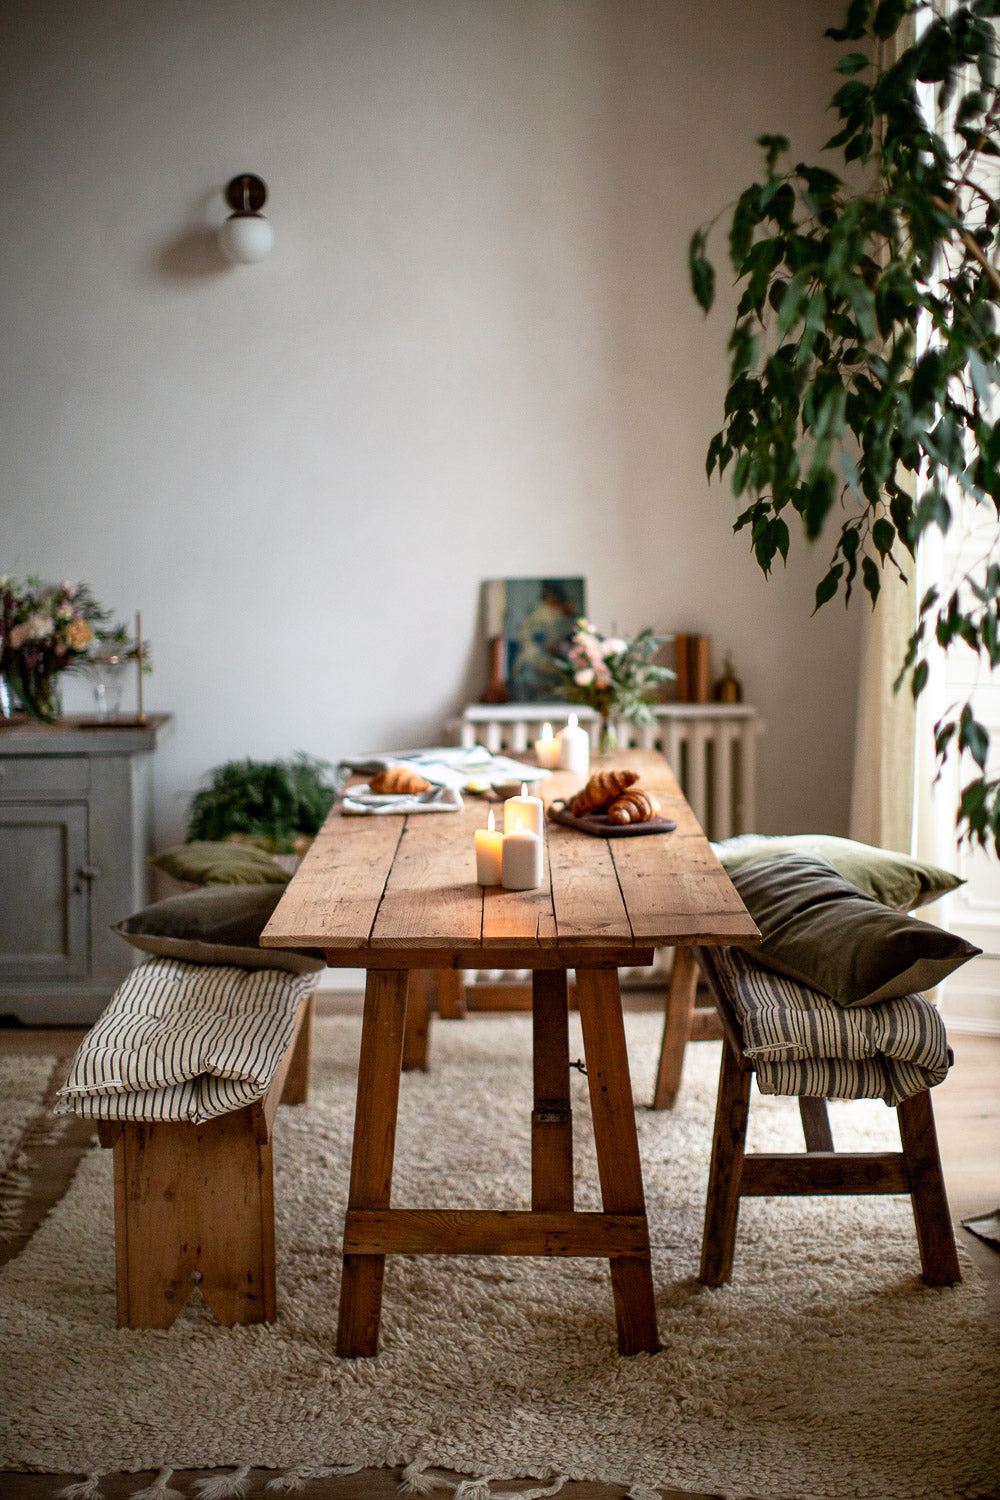 natural modern rustic interior with plants